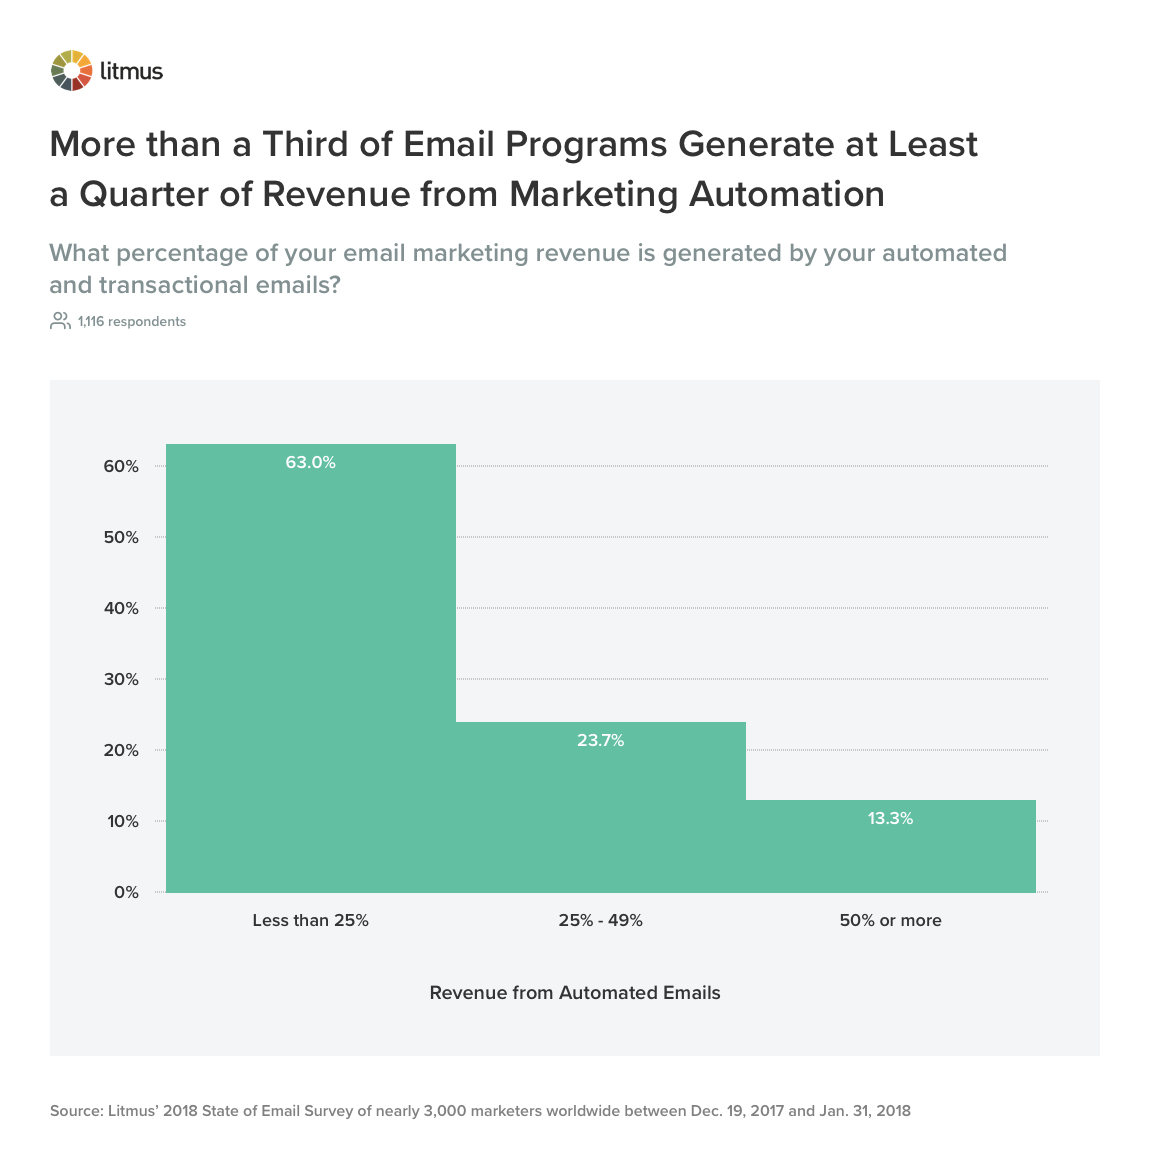 More than a Third of Email Programs Generate at Least a Quarter of Revenue from Marketing Automation